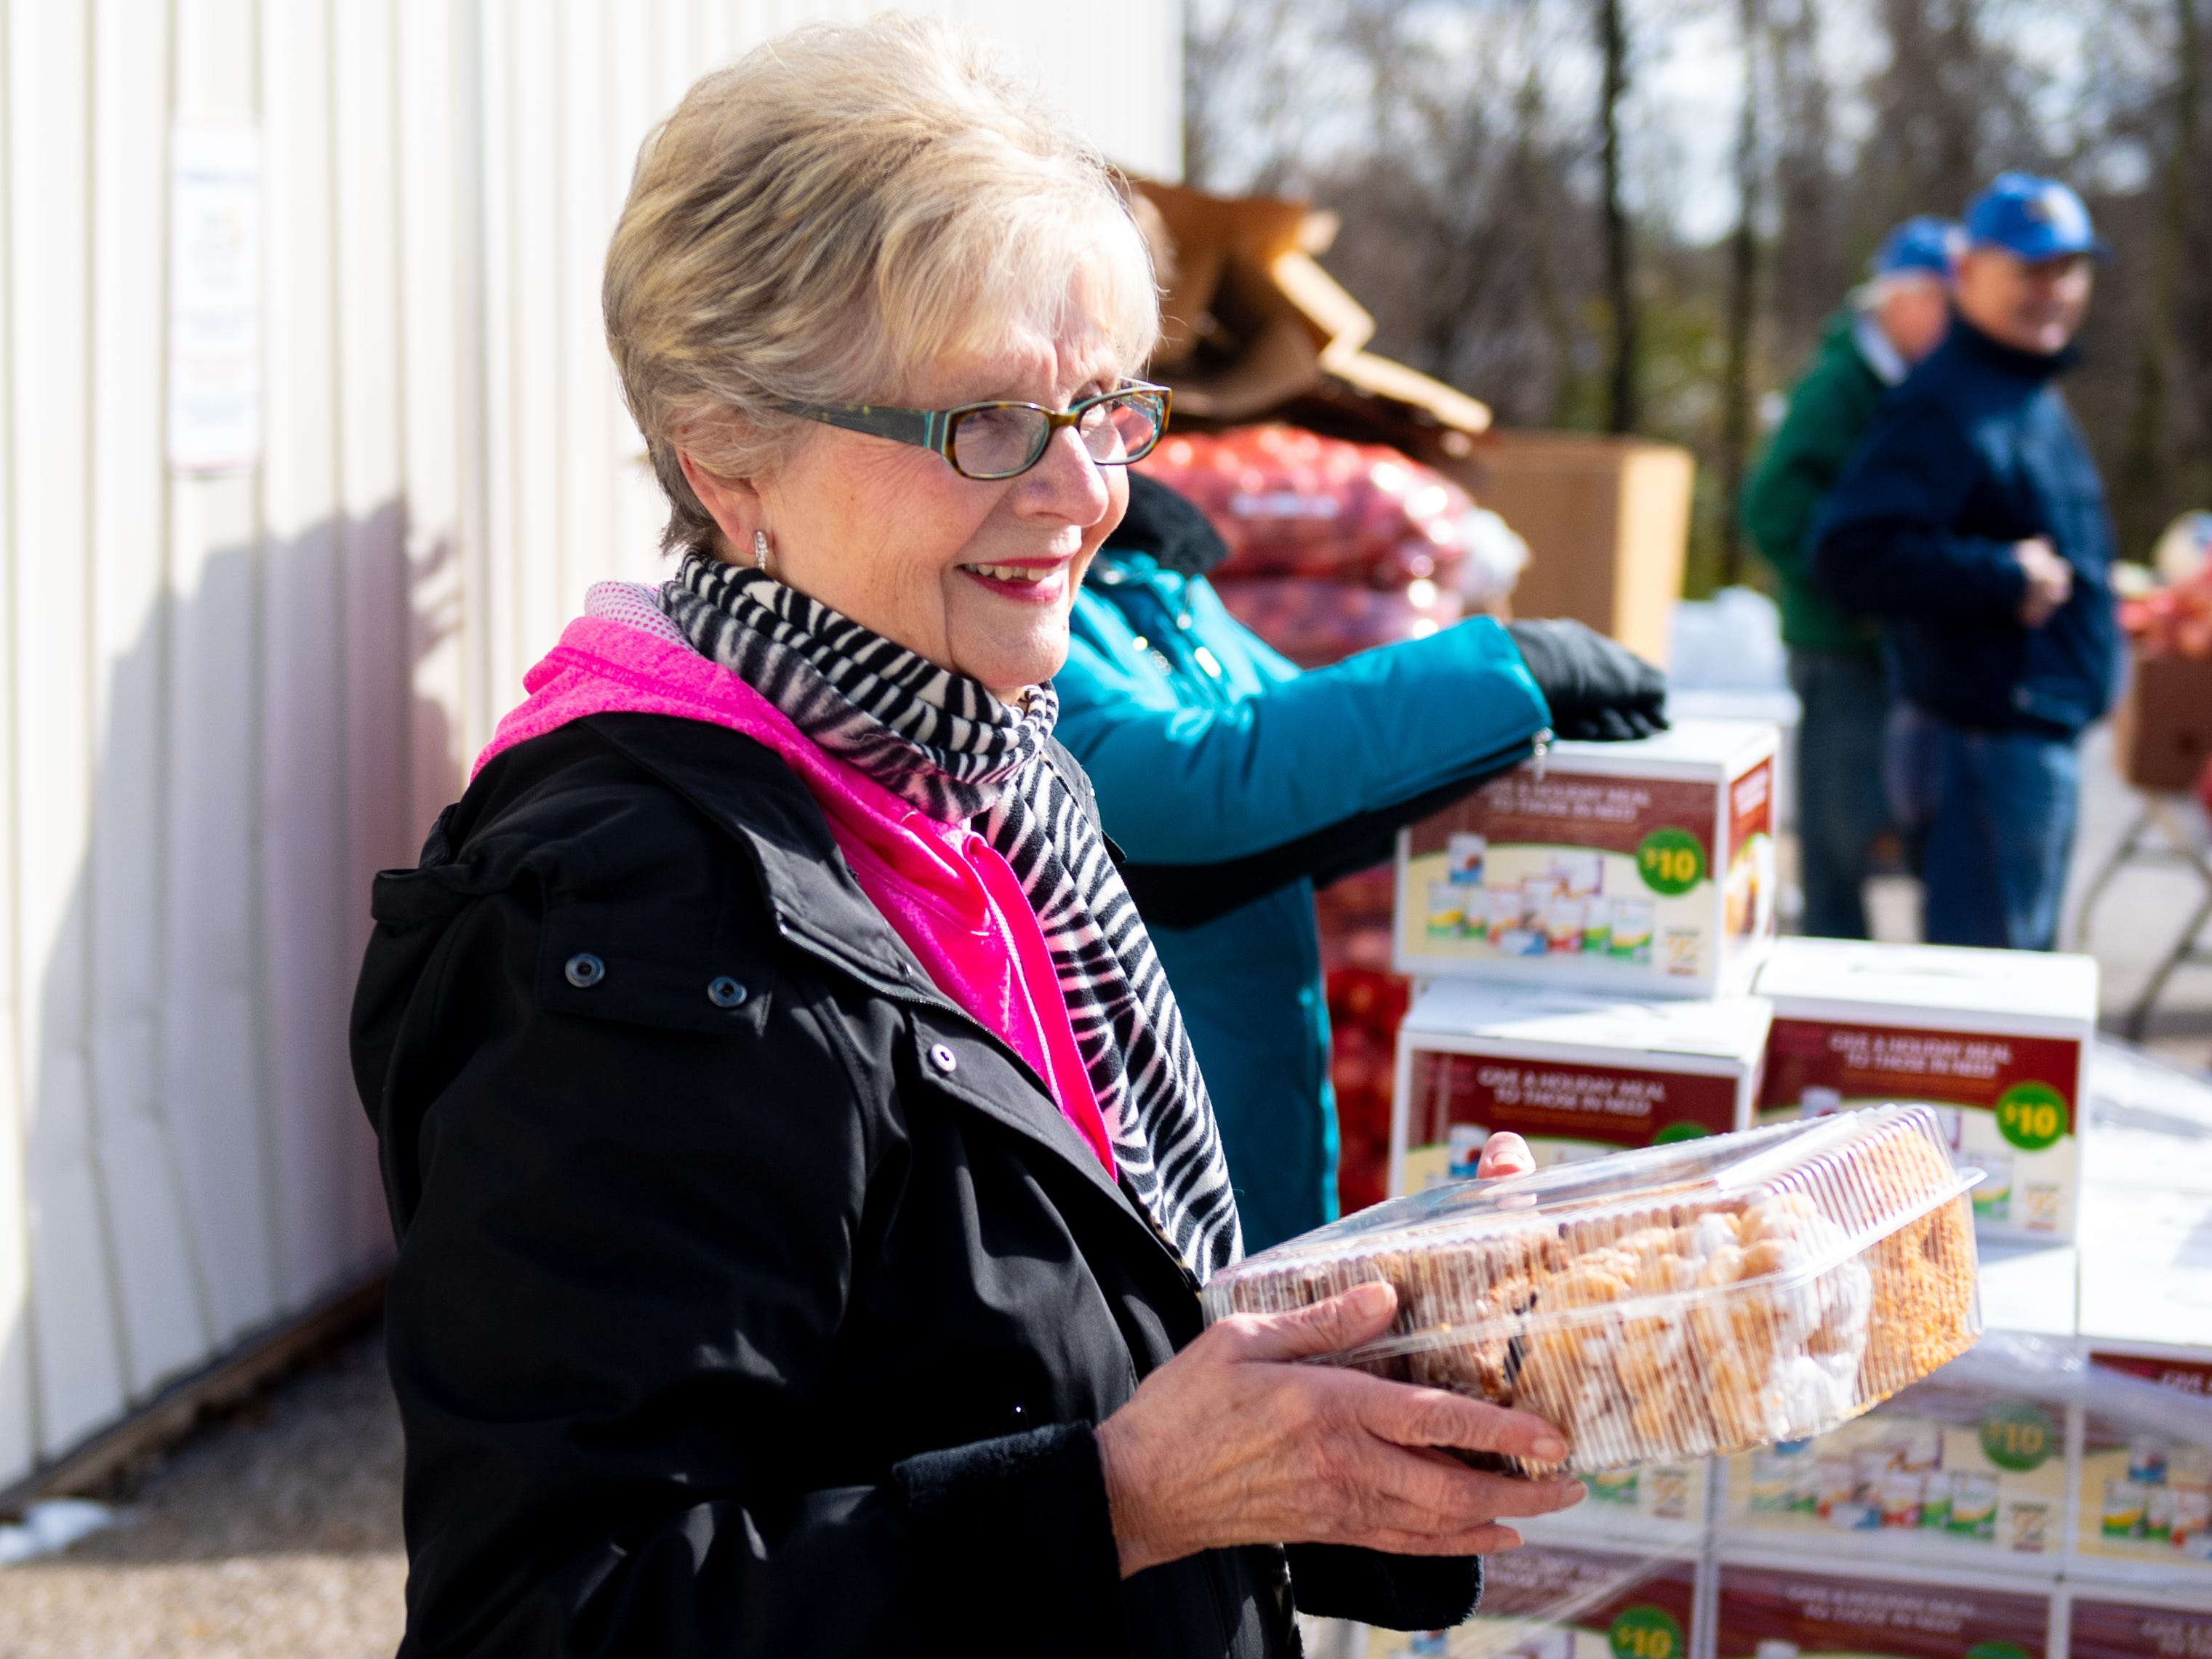 Bonnie Brodbeck brings out donuts during the Thanksgiving food giveaway provided by New Hope Ministries, November 16, 2018.